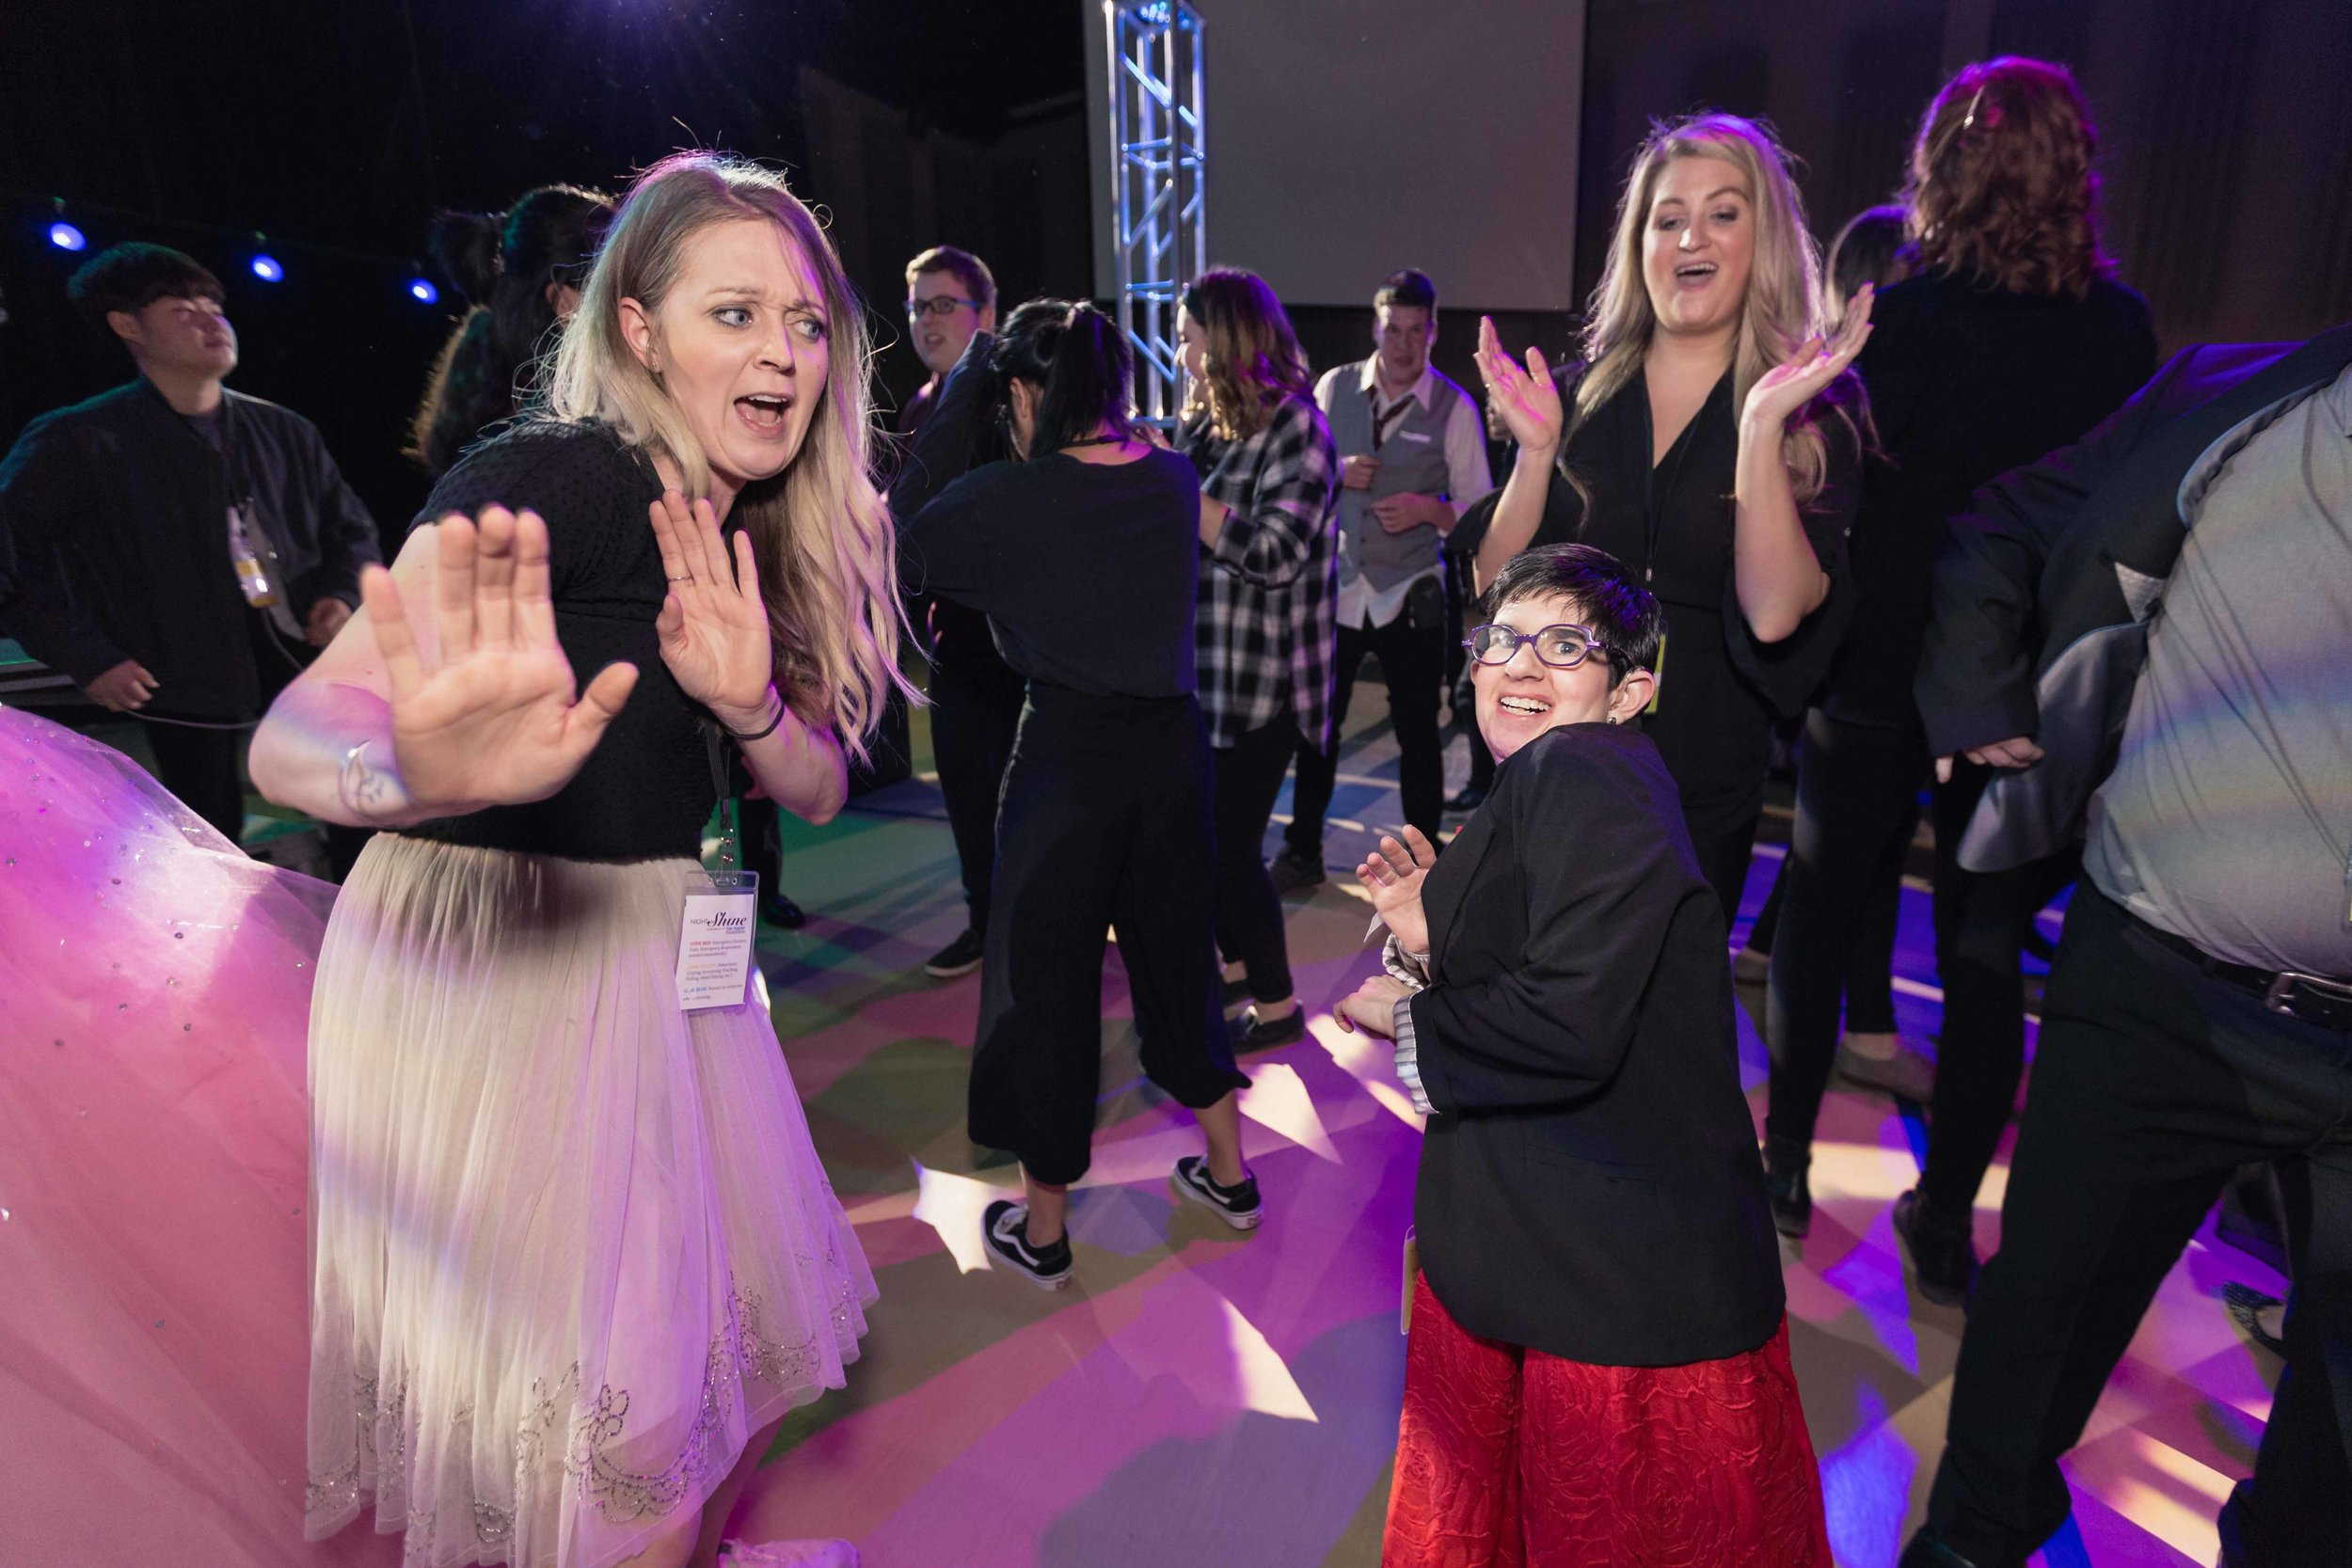 InBetweenDreamsWedding_NightToShine2018_HorizonChurch (311 of 514).jpg